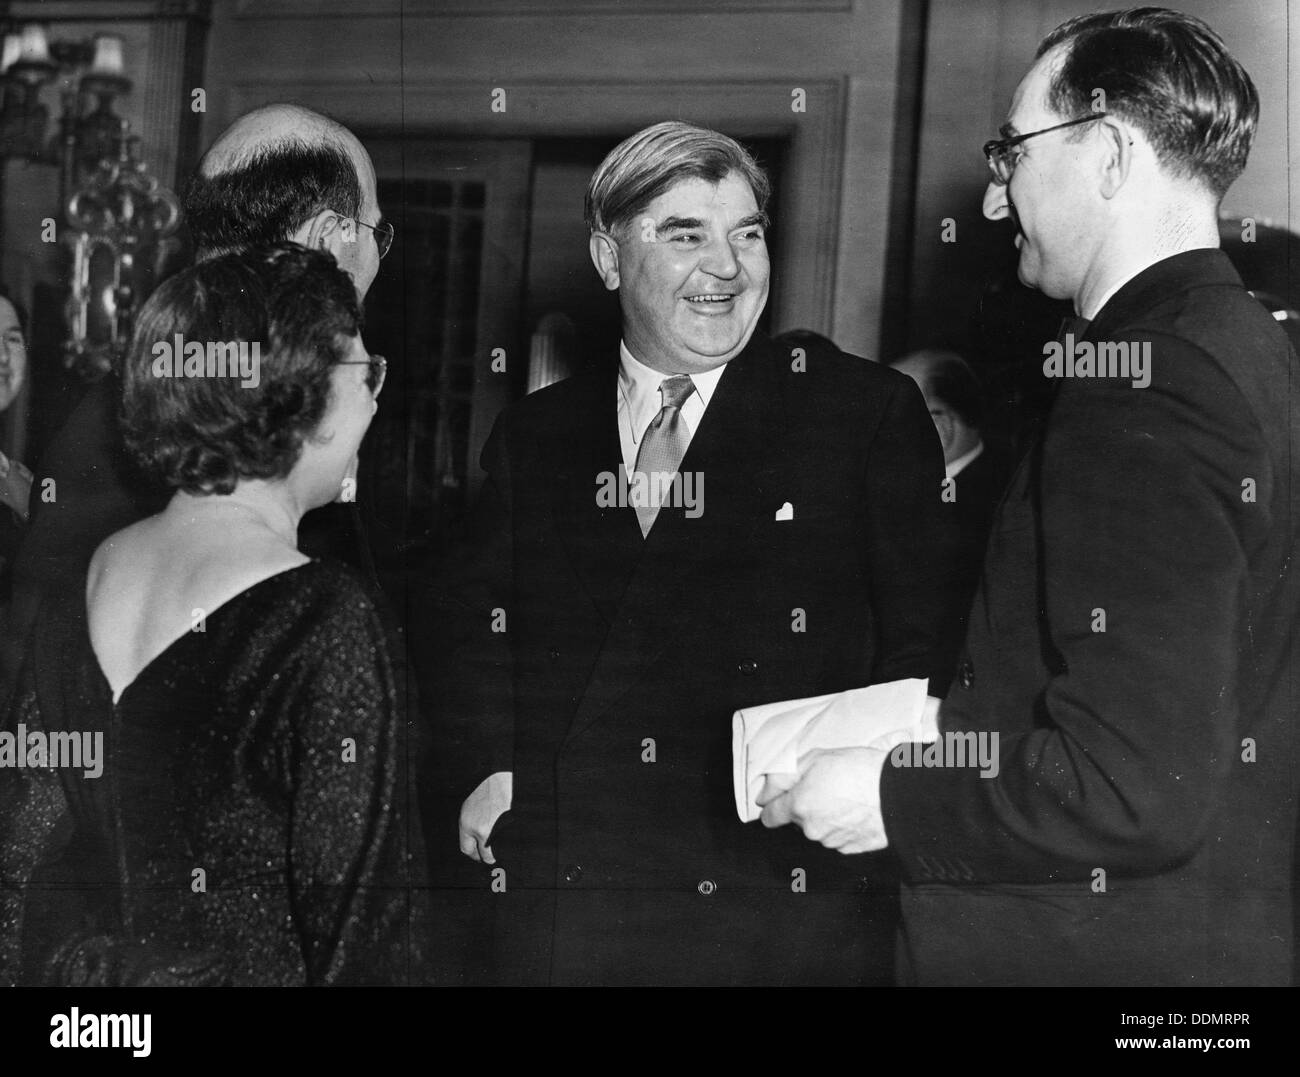 Aneurin Bevan (1897-1960), Welsh politician who introduced the NHS in Britain. - Stock Image